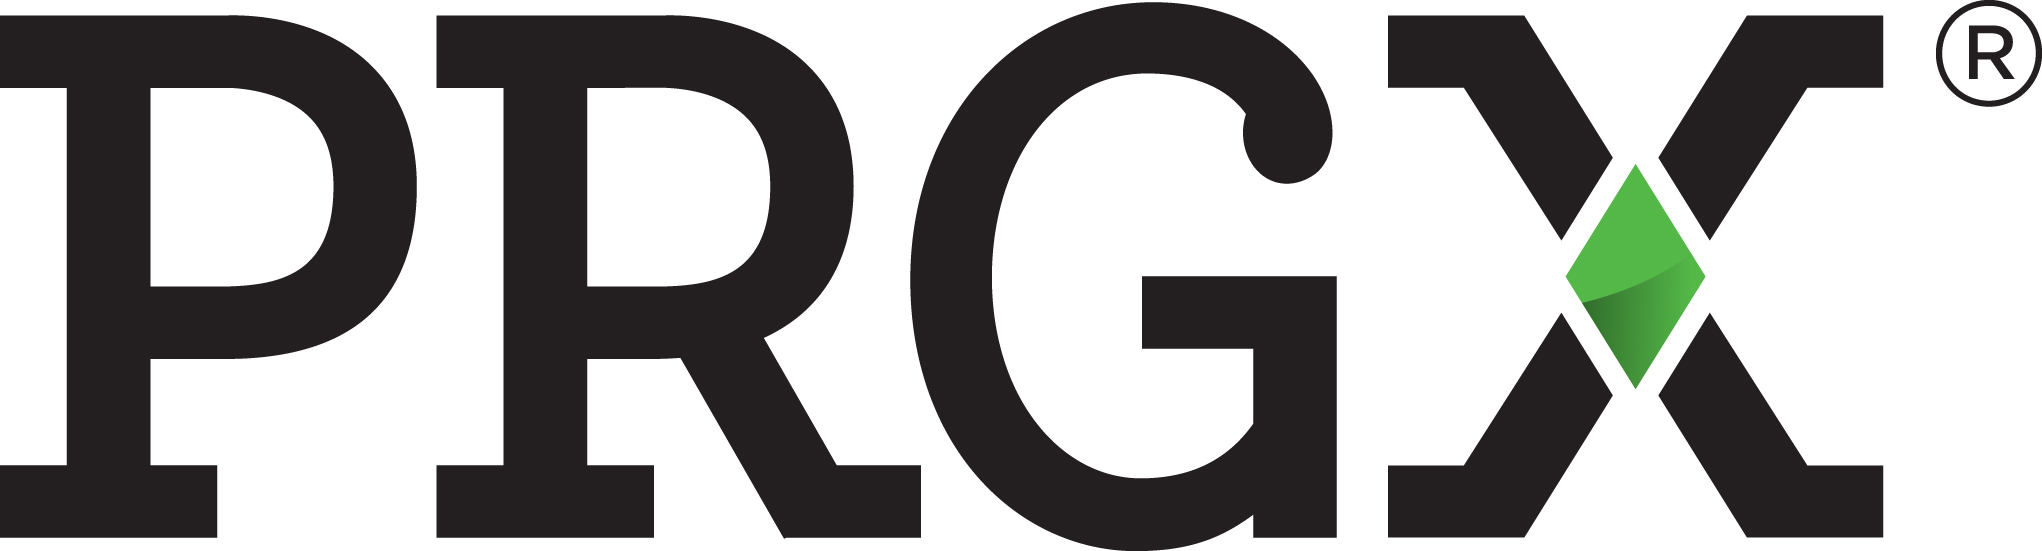 PRGX Global, Inc. Announces Second Quarter  2015 Financial Results